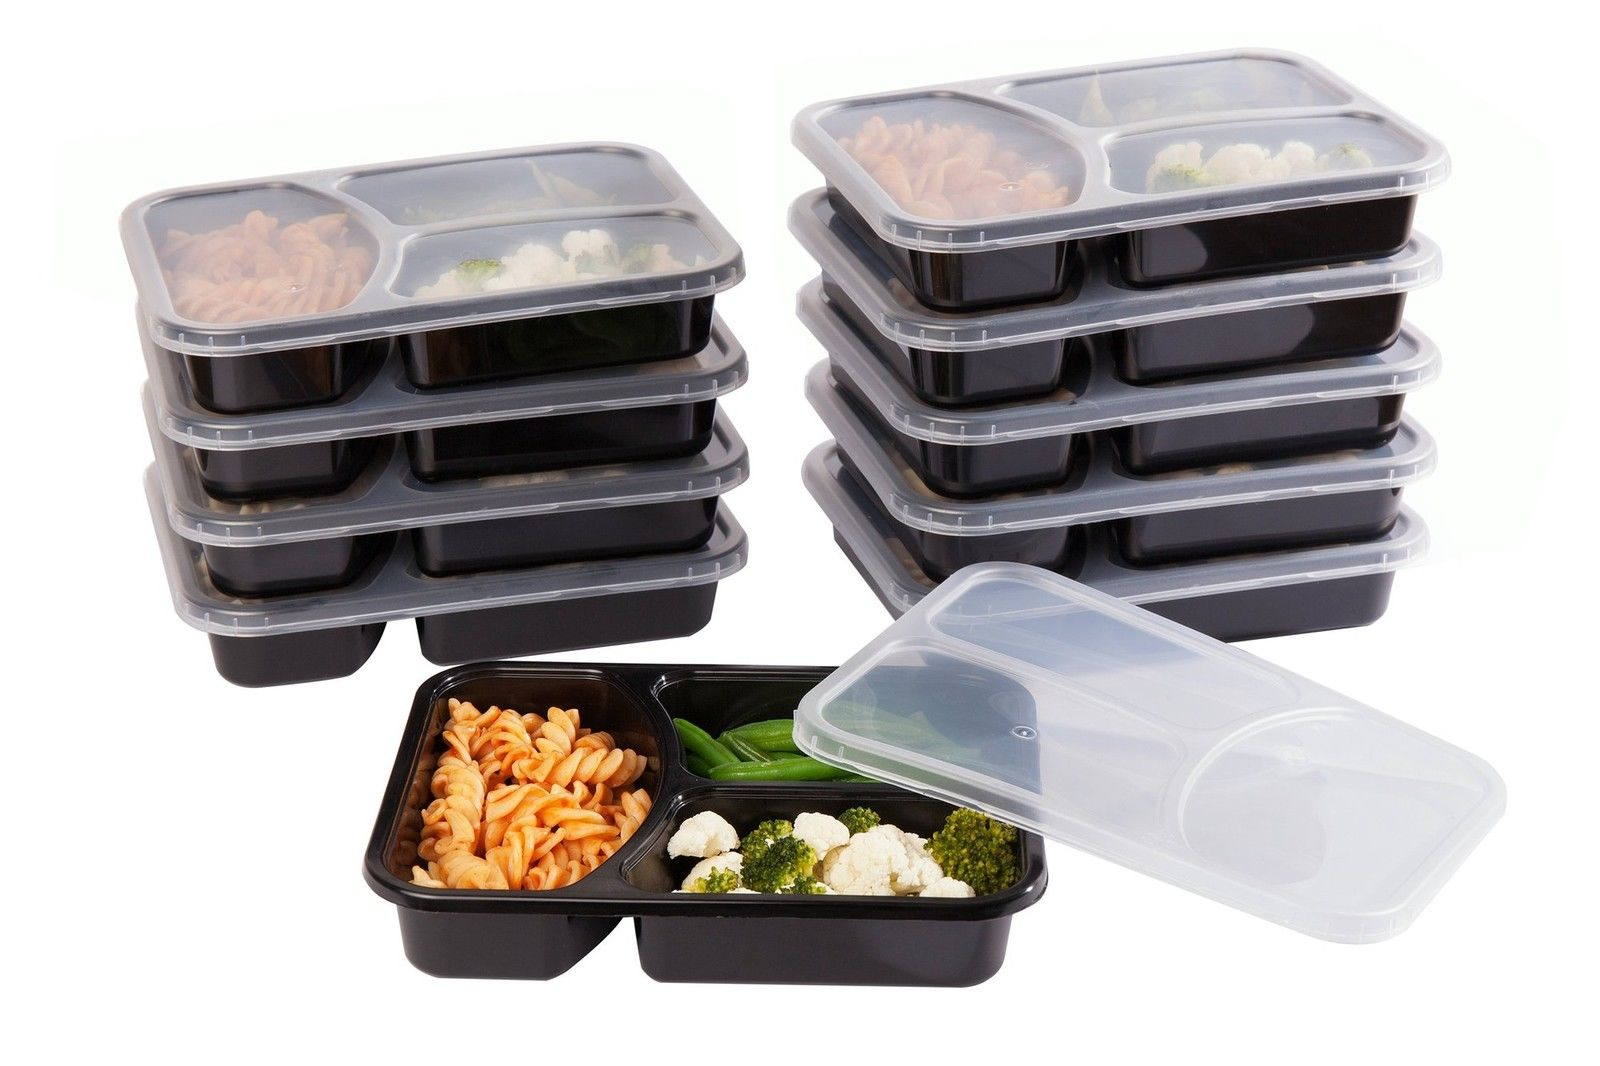 SET of 10 Reusable-Easy To Clean Lunch Kit Food Storage Containers for Adults 1